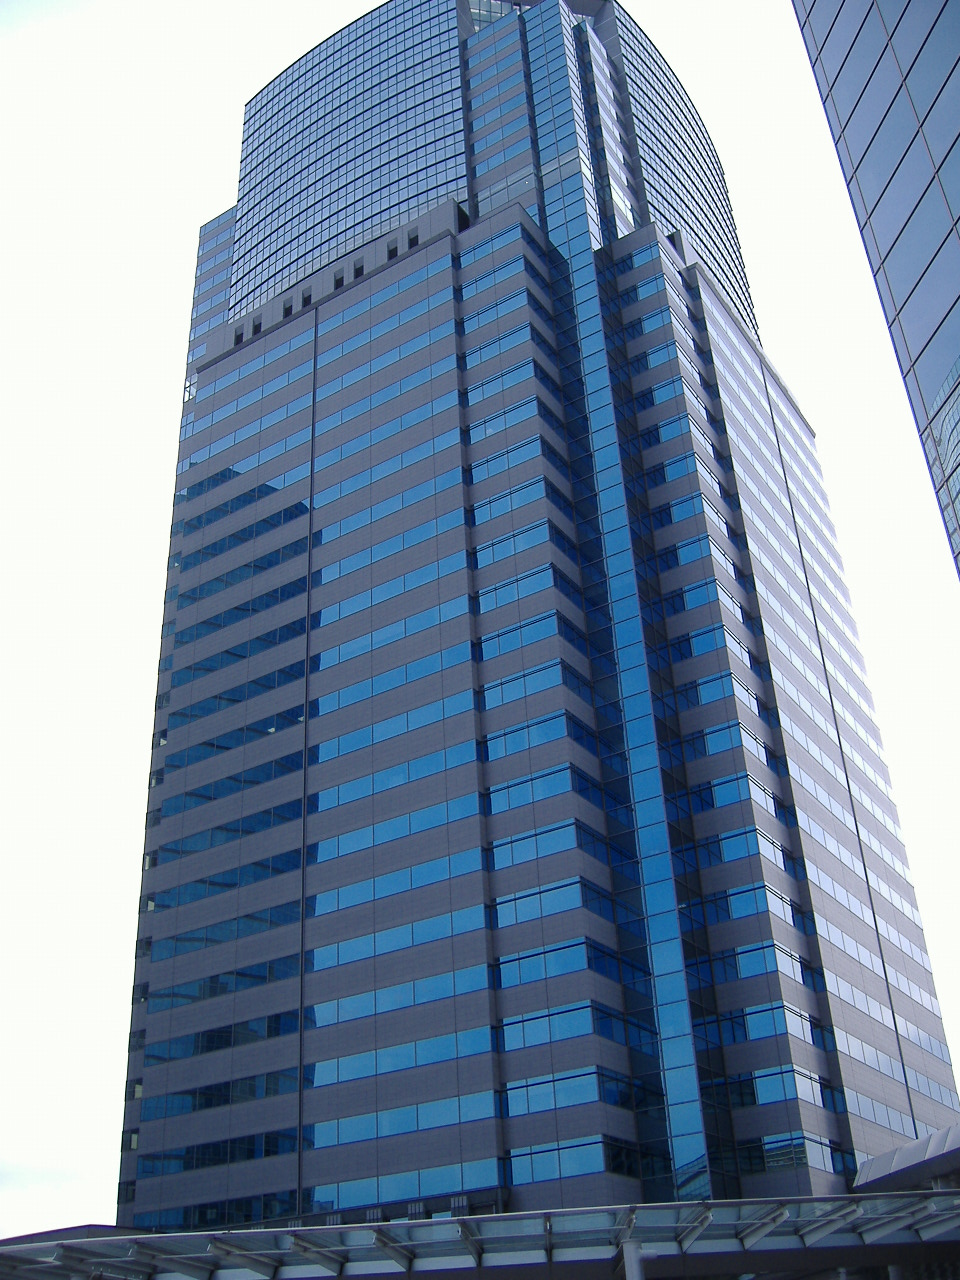 Shinagawa East One Tower Wikipedia